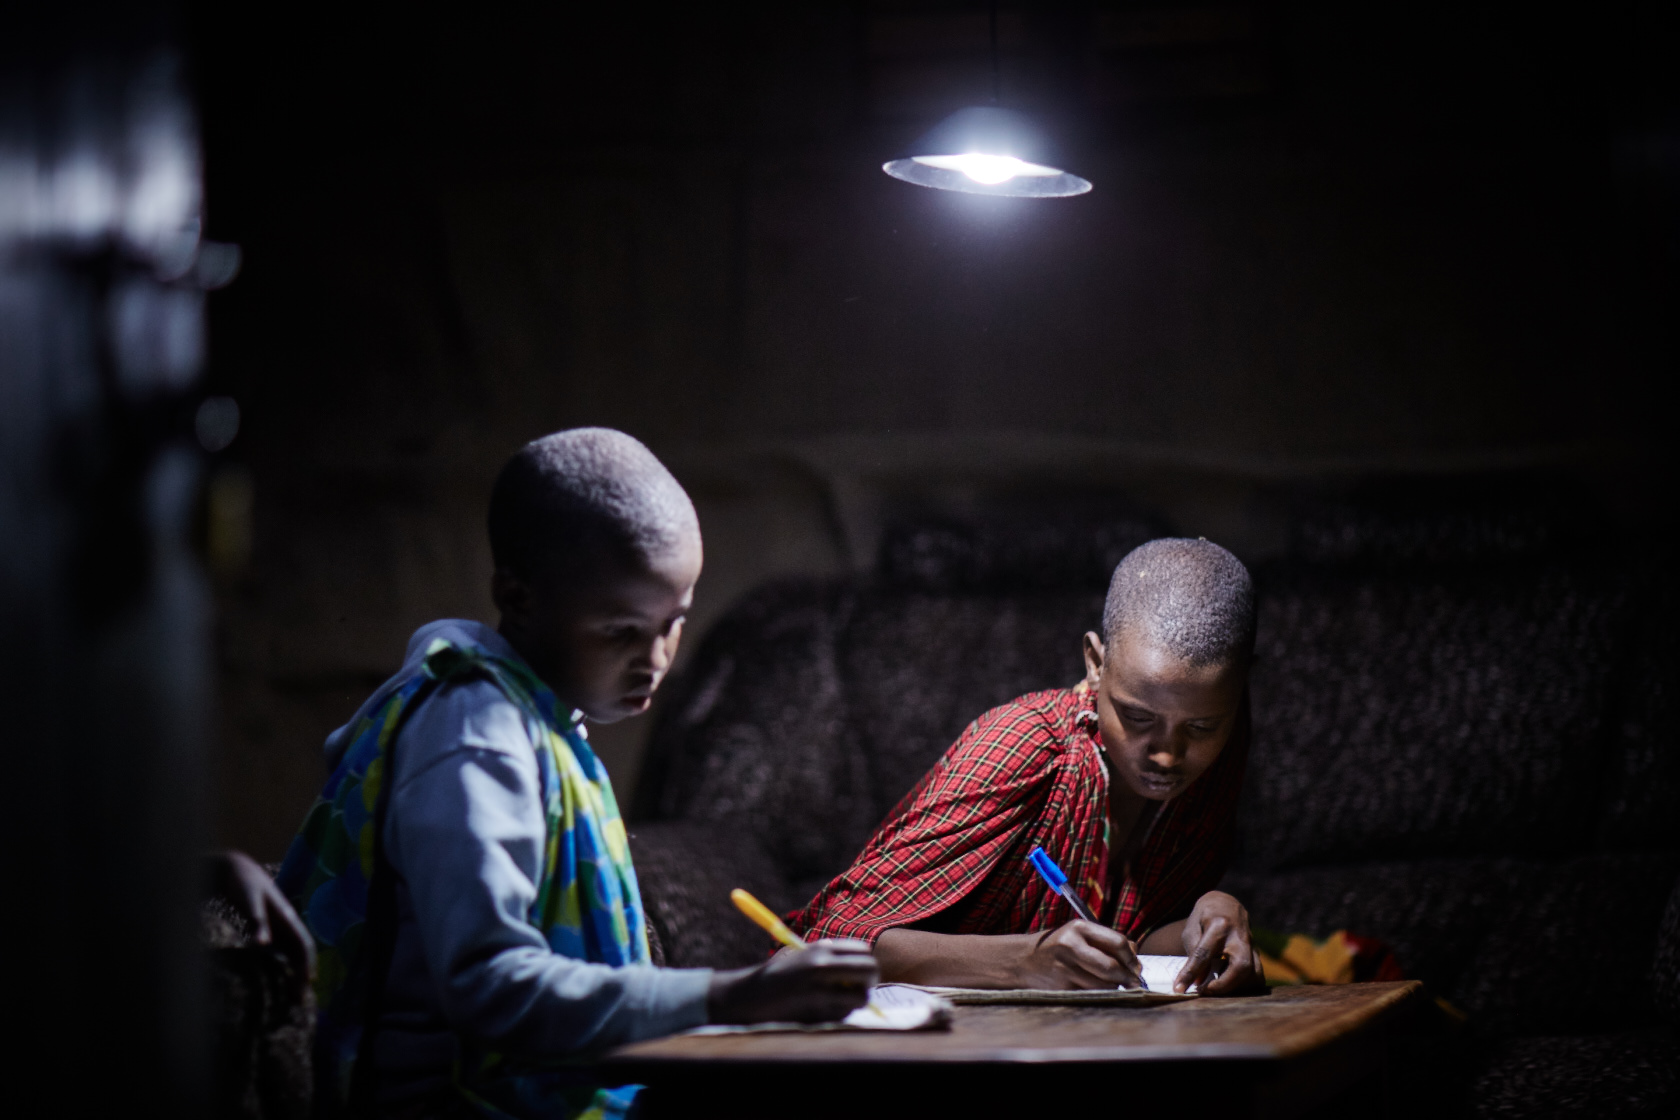 ghana_EDF_electrification_kit_solaire_afrique_Off_grid_electric